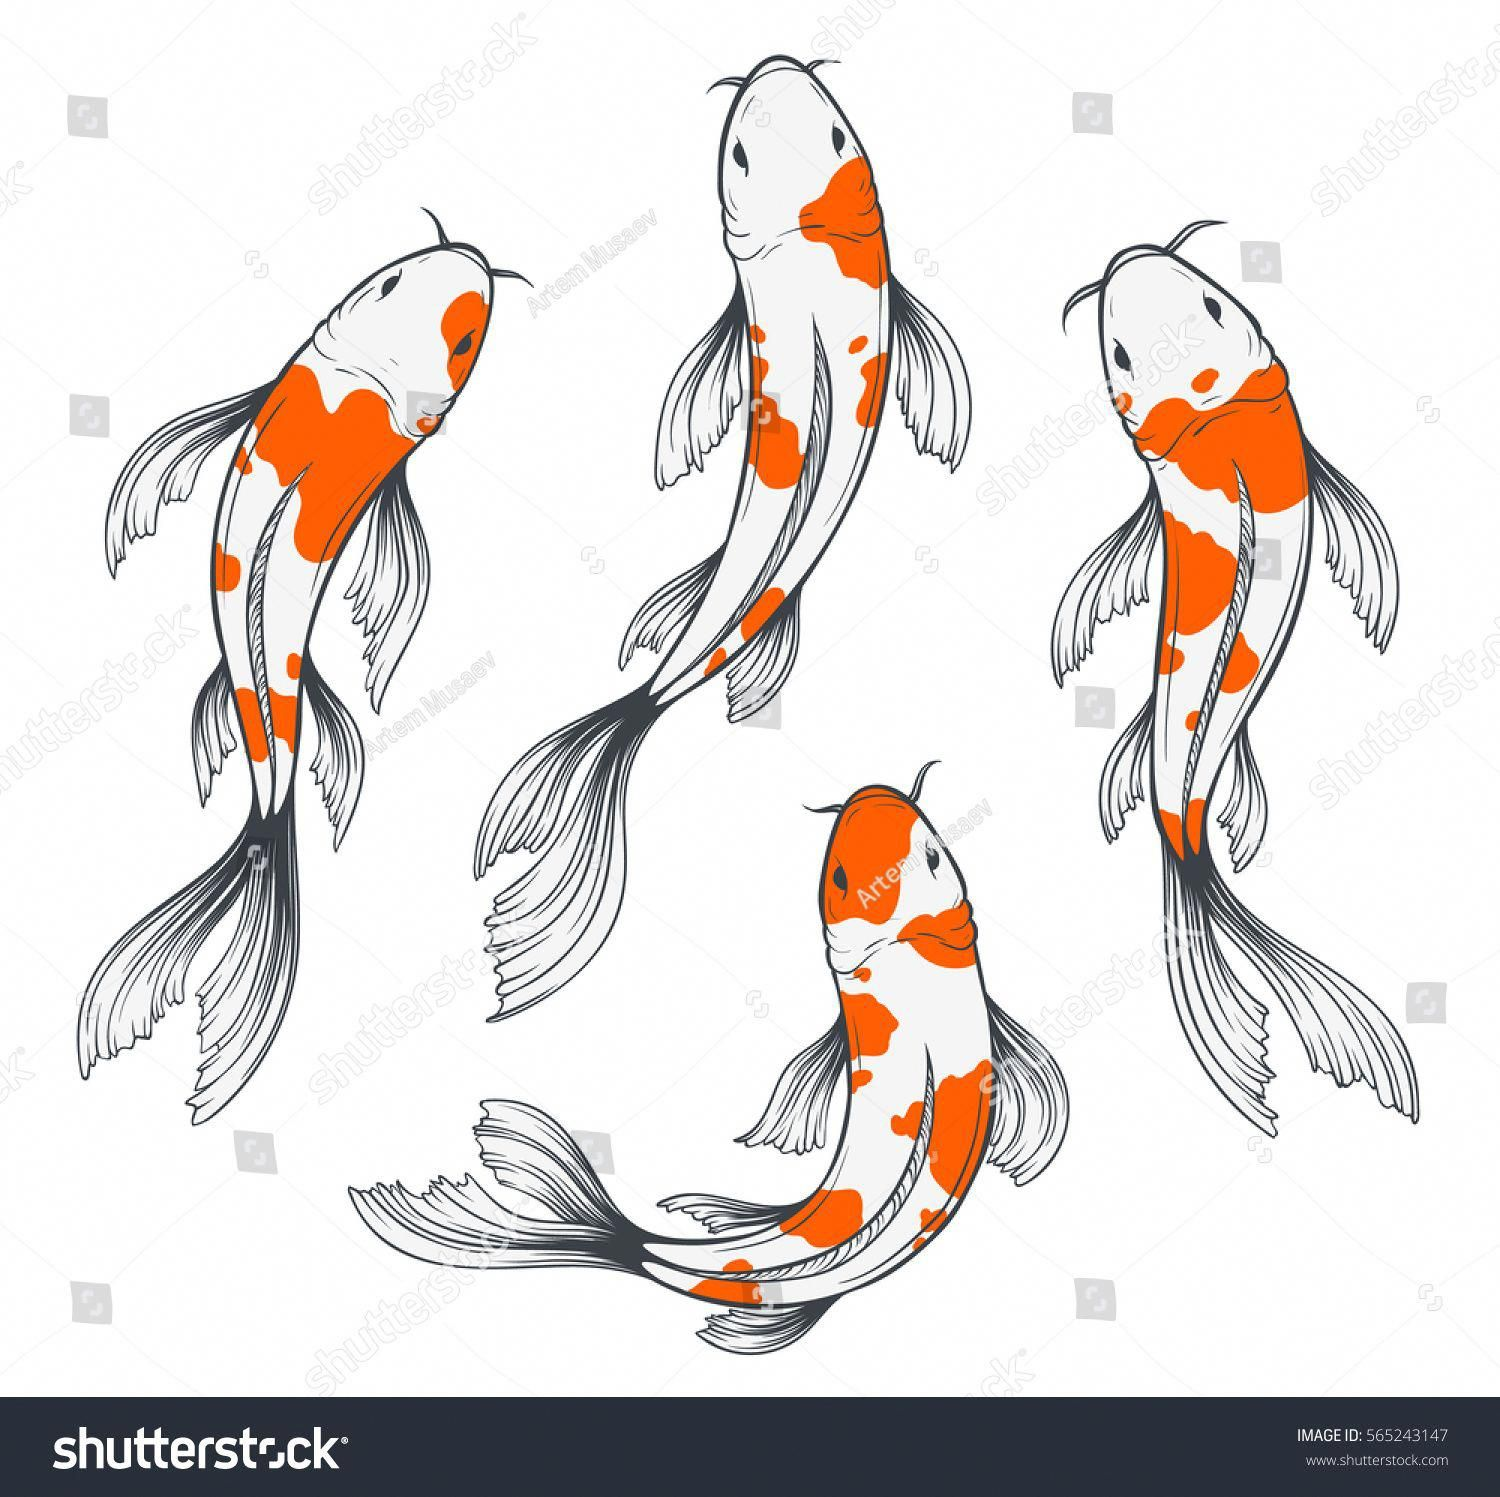 Set Of Four Traditional Japanese Koi Fishes Top View Simple Sketch Style Drawing Of Red And White Fishes Koifishinforma Koi Fish Drawing Koi Art Fish Sketch